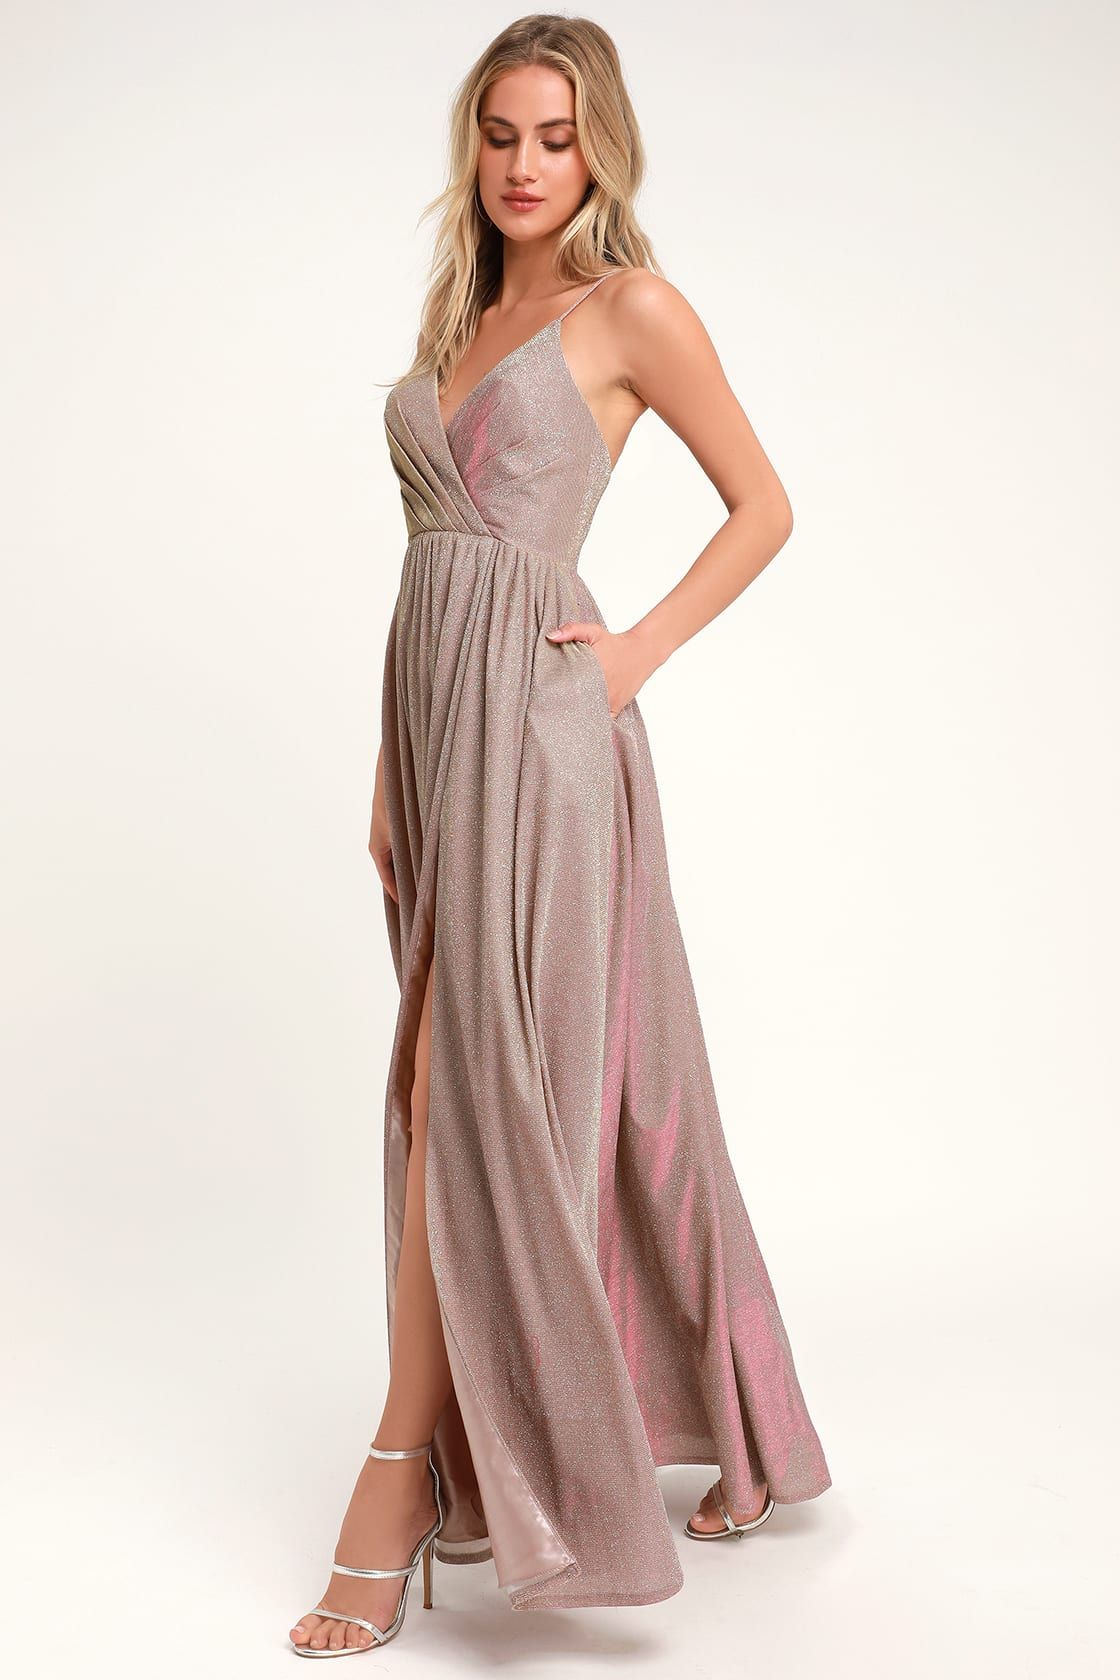 30a000a1be Glam Lavender Gown - Glitter Gown - Metallic Maxi Dress